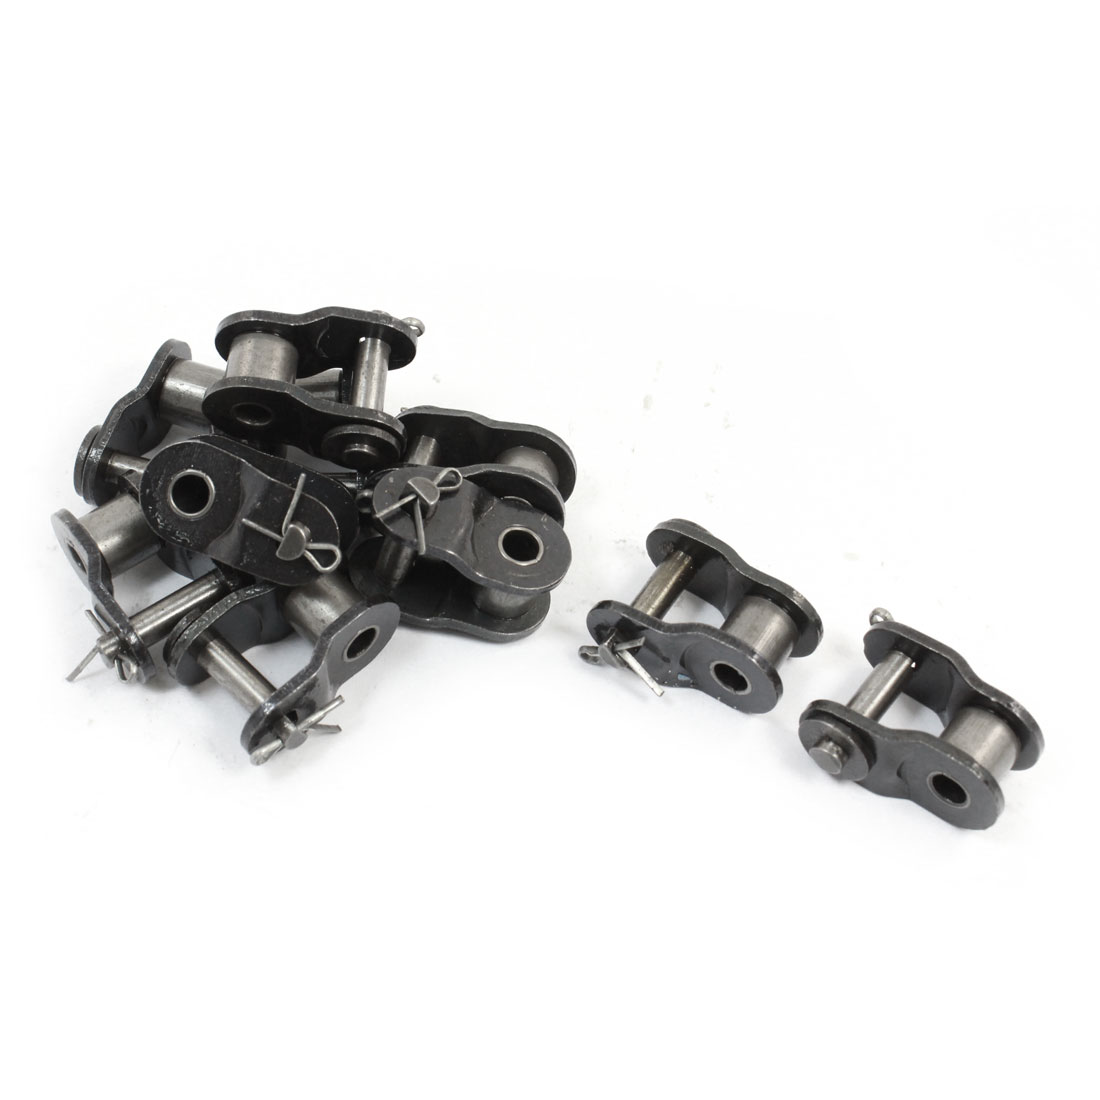 10pcs Half Offset Connecting Link Connectors Chain for Single Speed Bike Bicycle